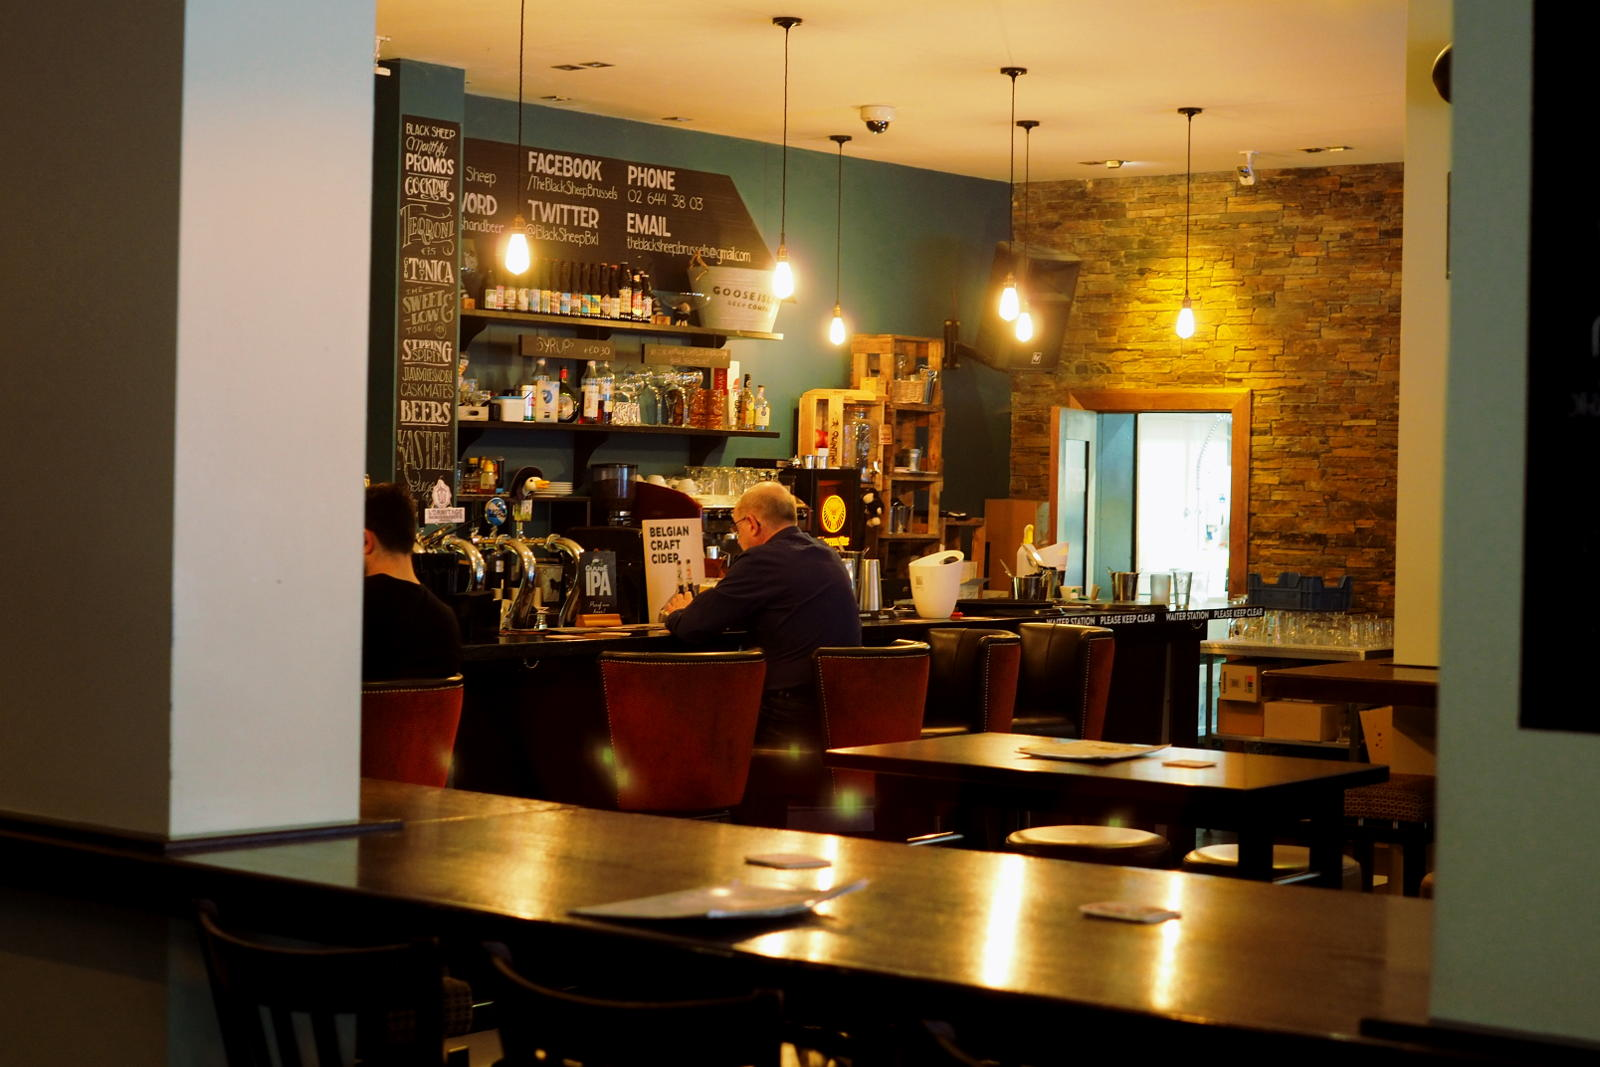 The Black Sheep food is another good reason to come to this craft beer bar